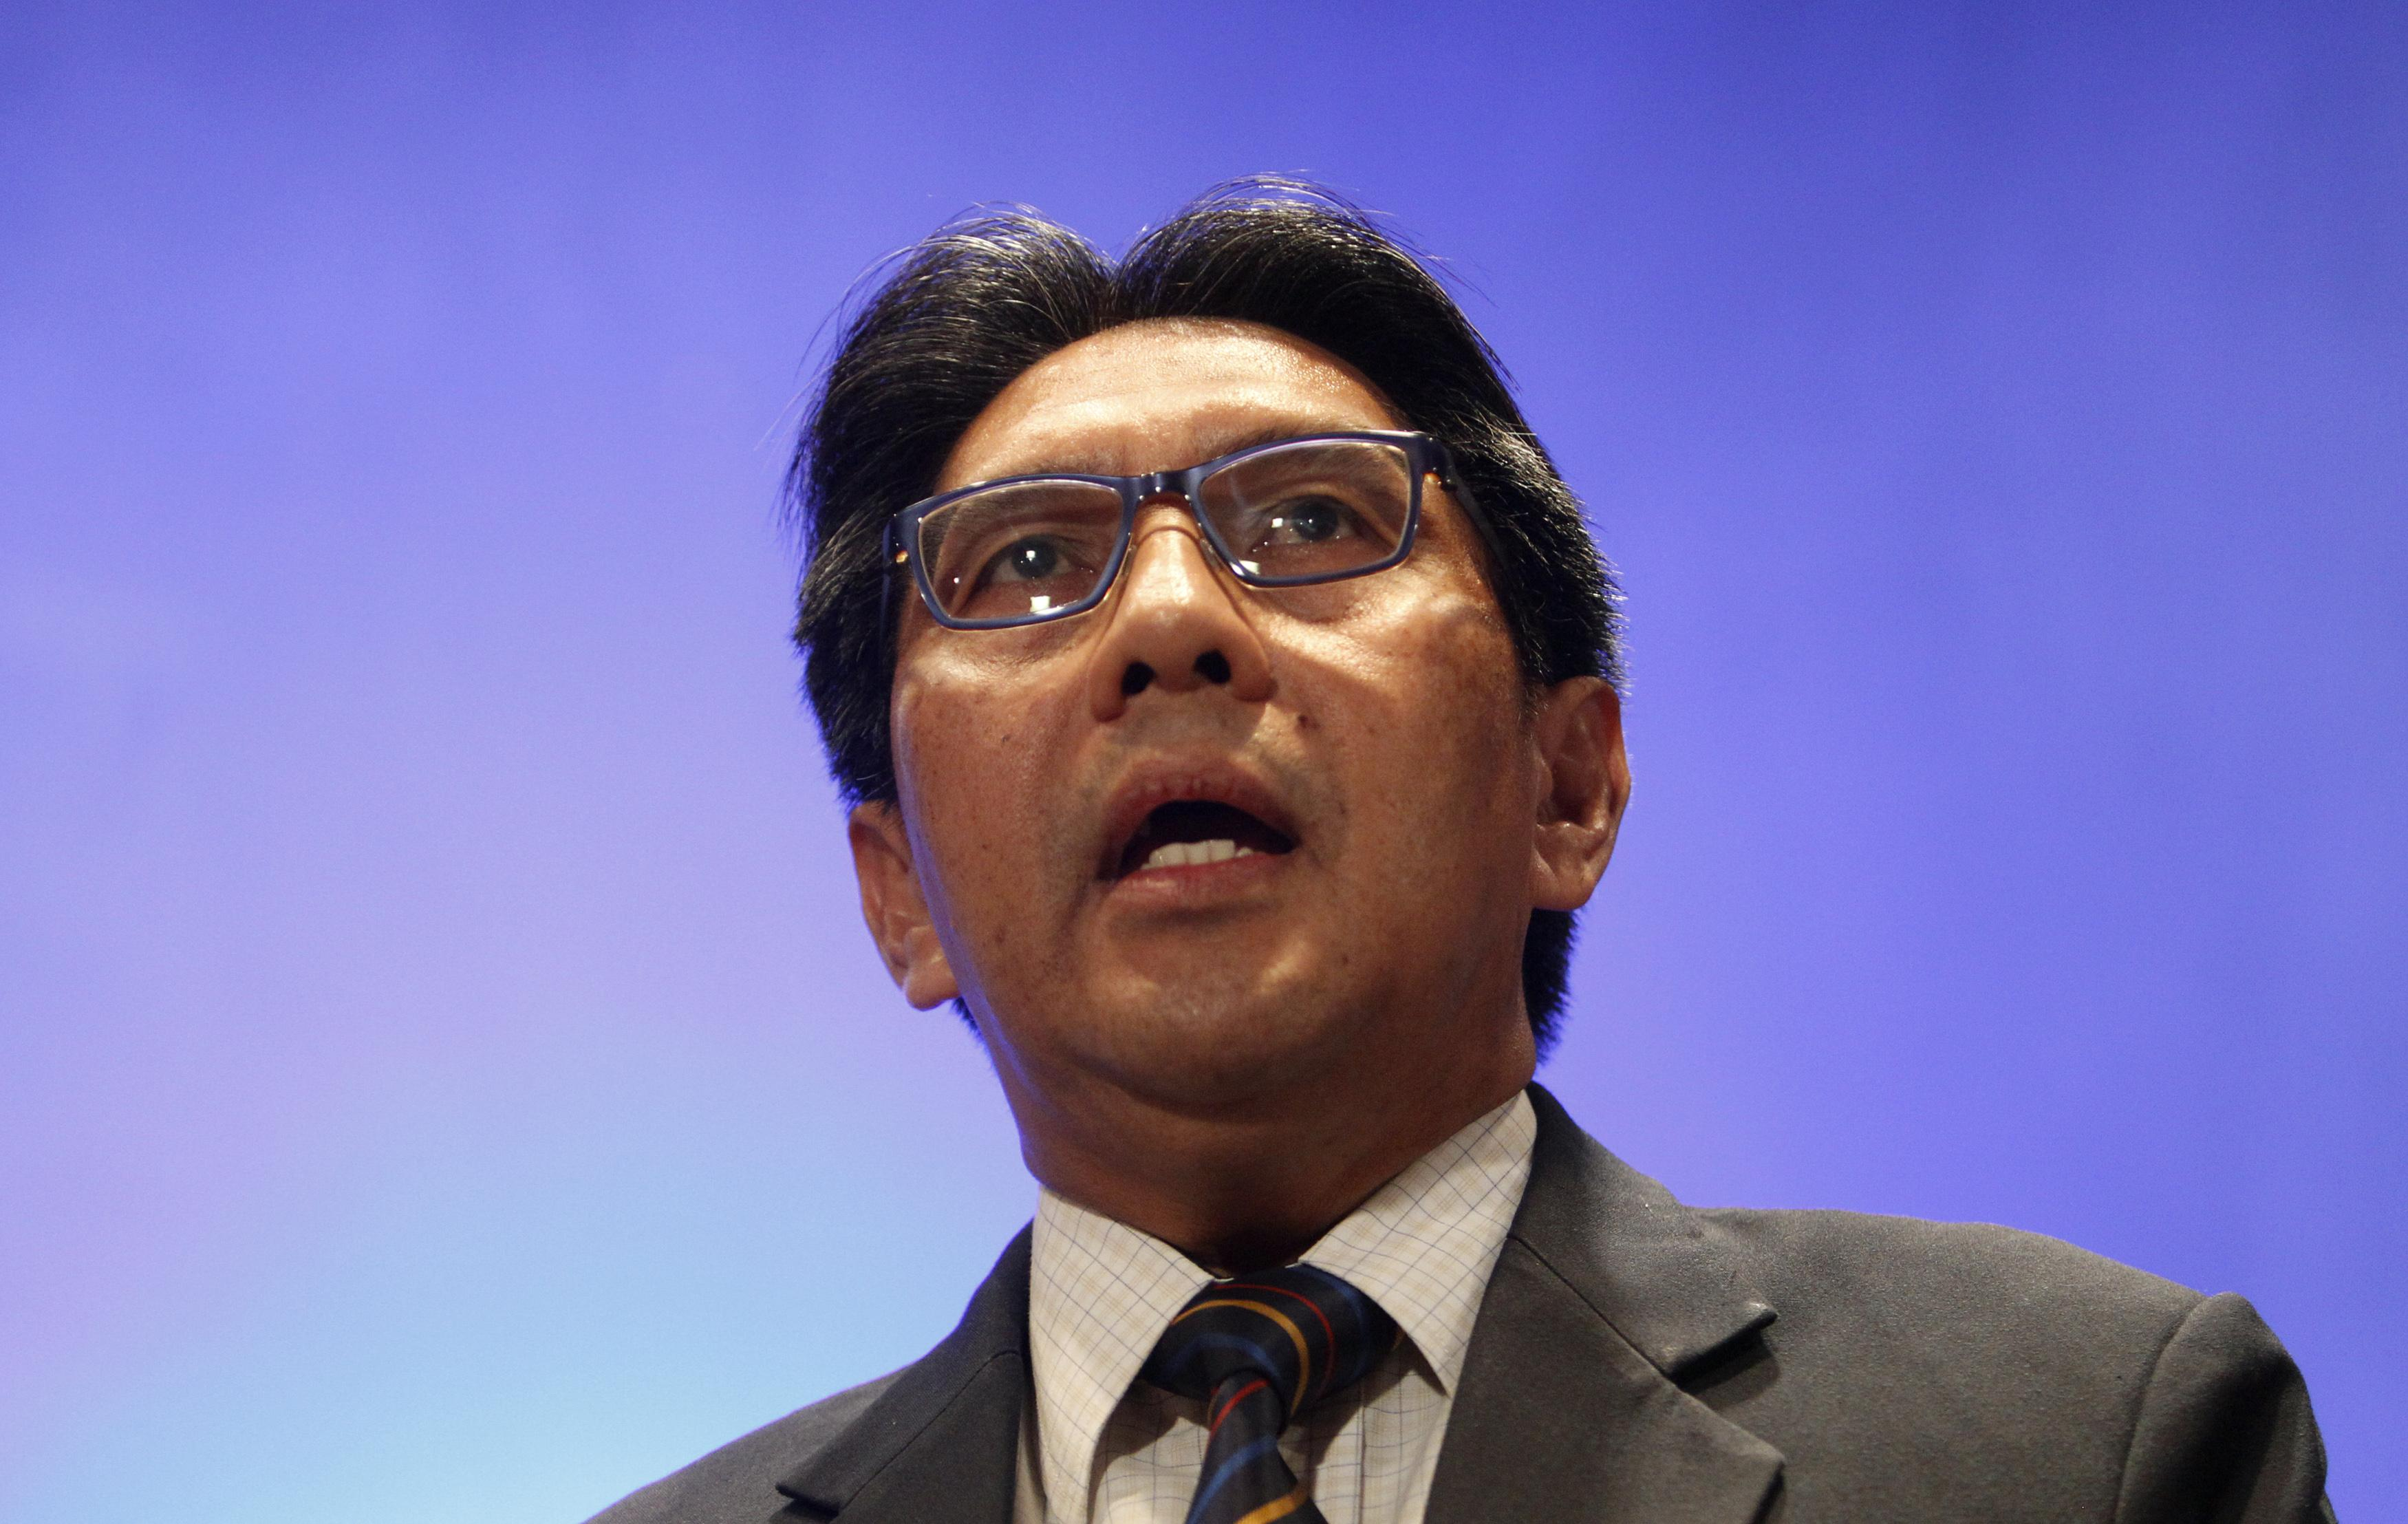 Malaysia Department of Civil Aviation Director General